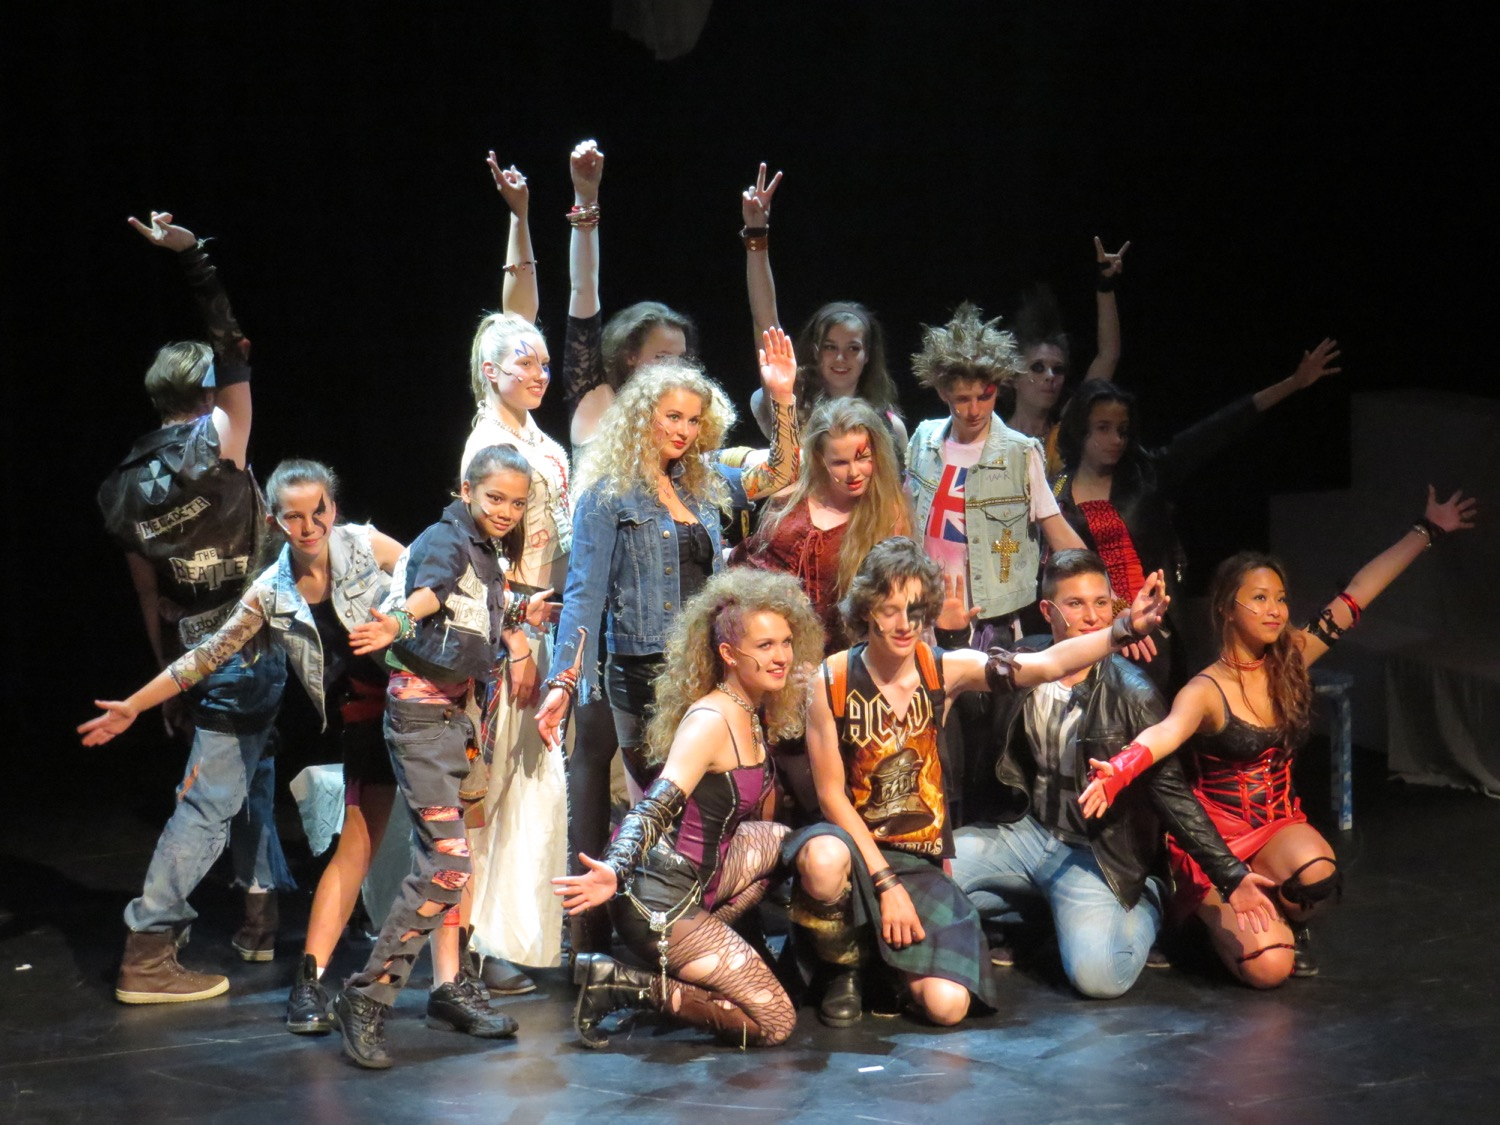 Musical WWRY, 2014 - Bohemians costume